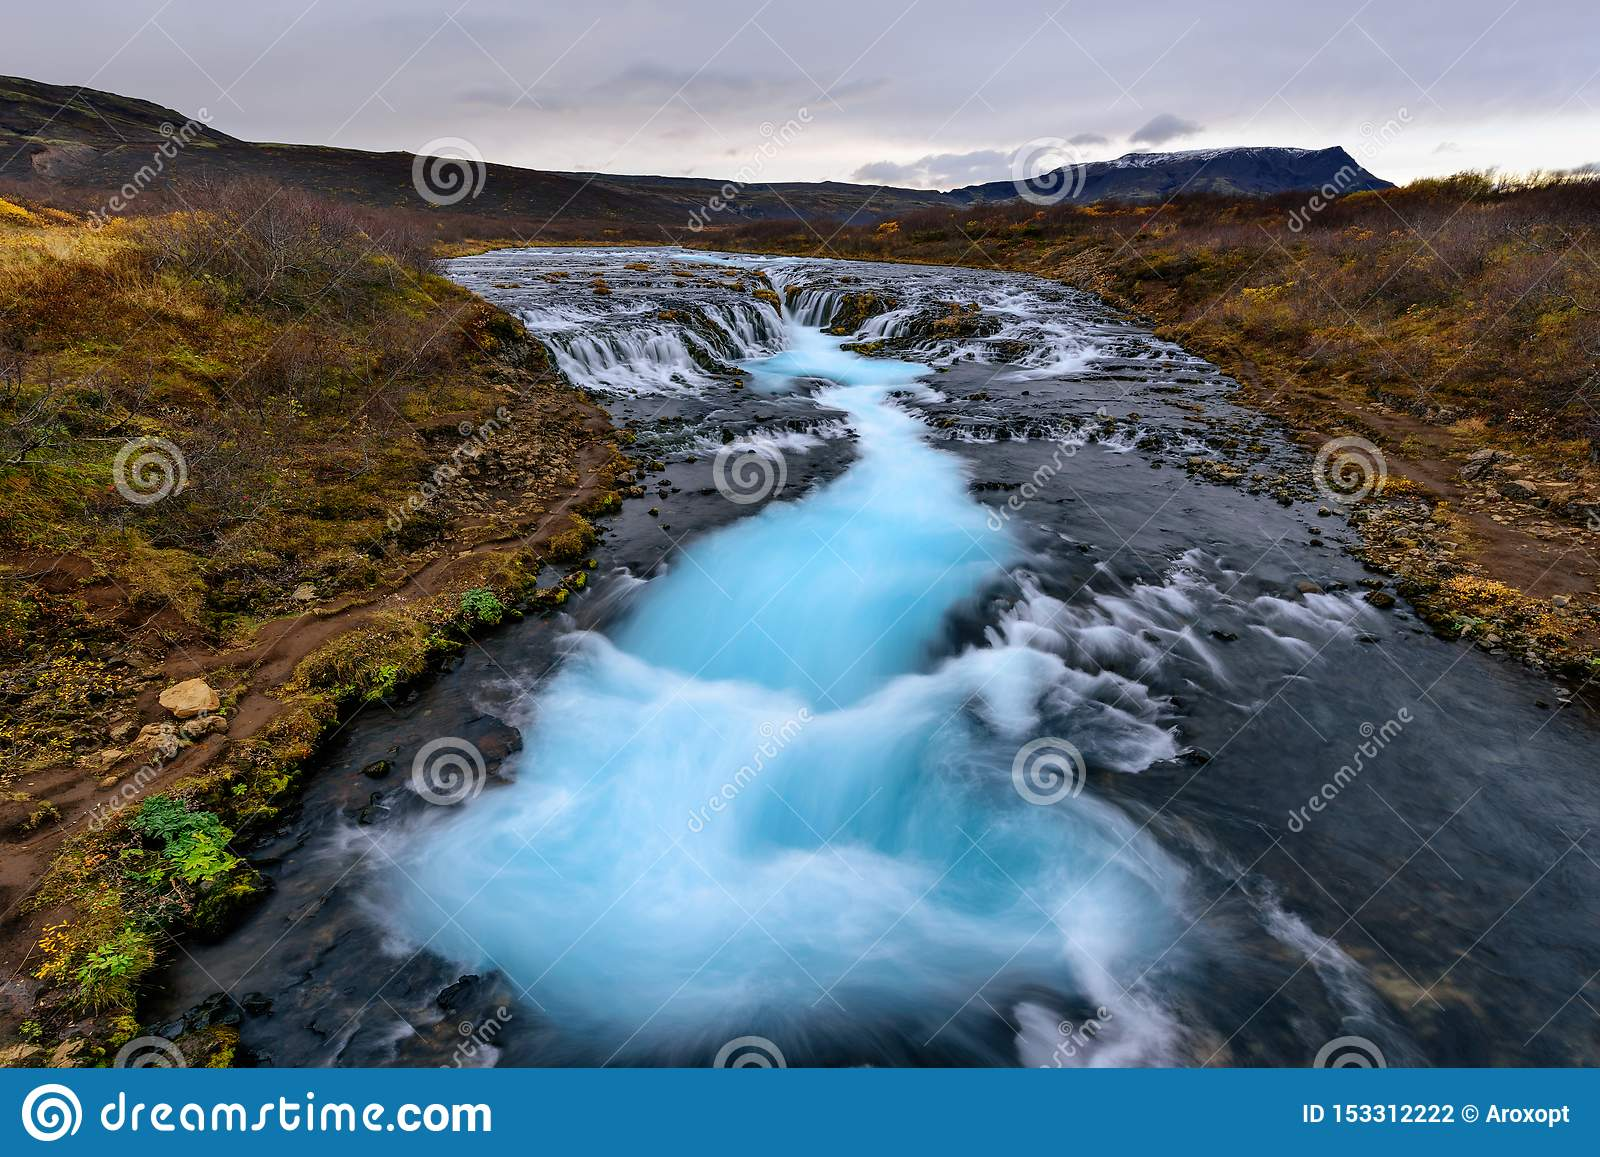 Landscape of Bruarfoss waterfall in Iceland at sunset. Bruarfoss famous natural landmark and tourist destination place. Travel and